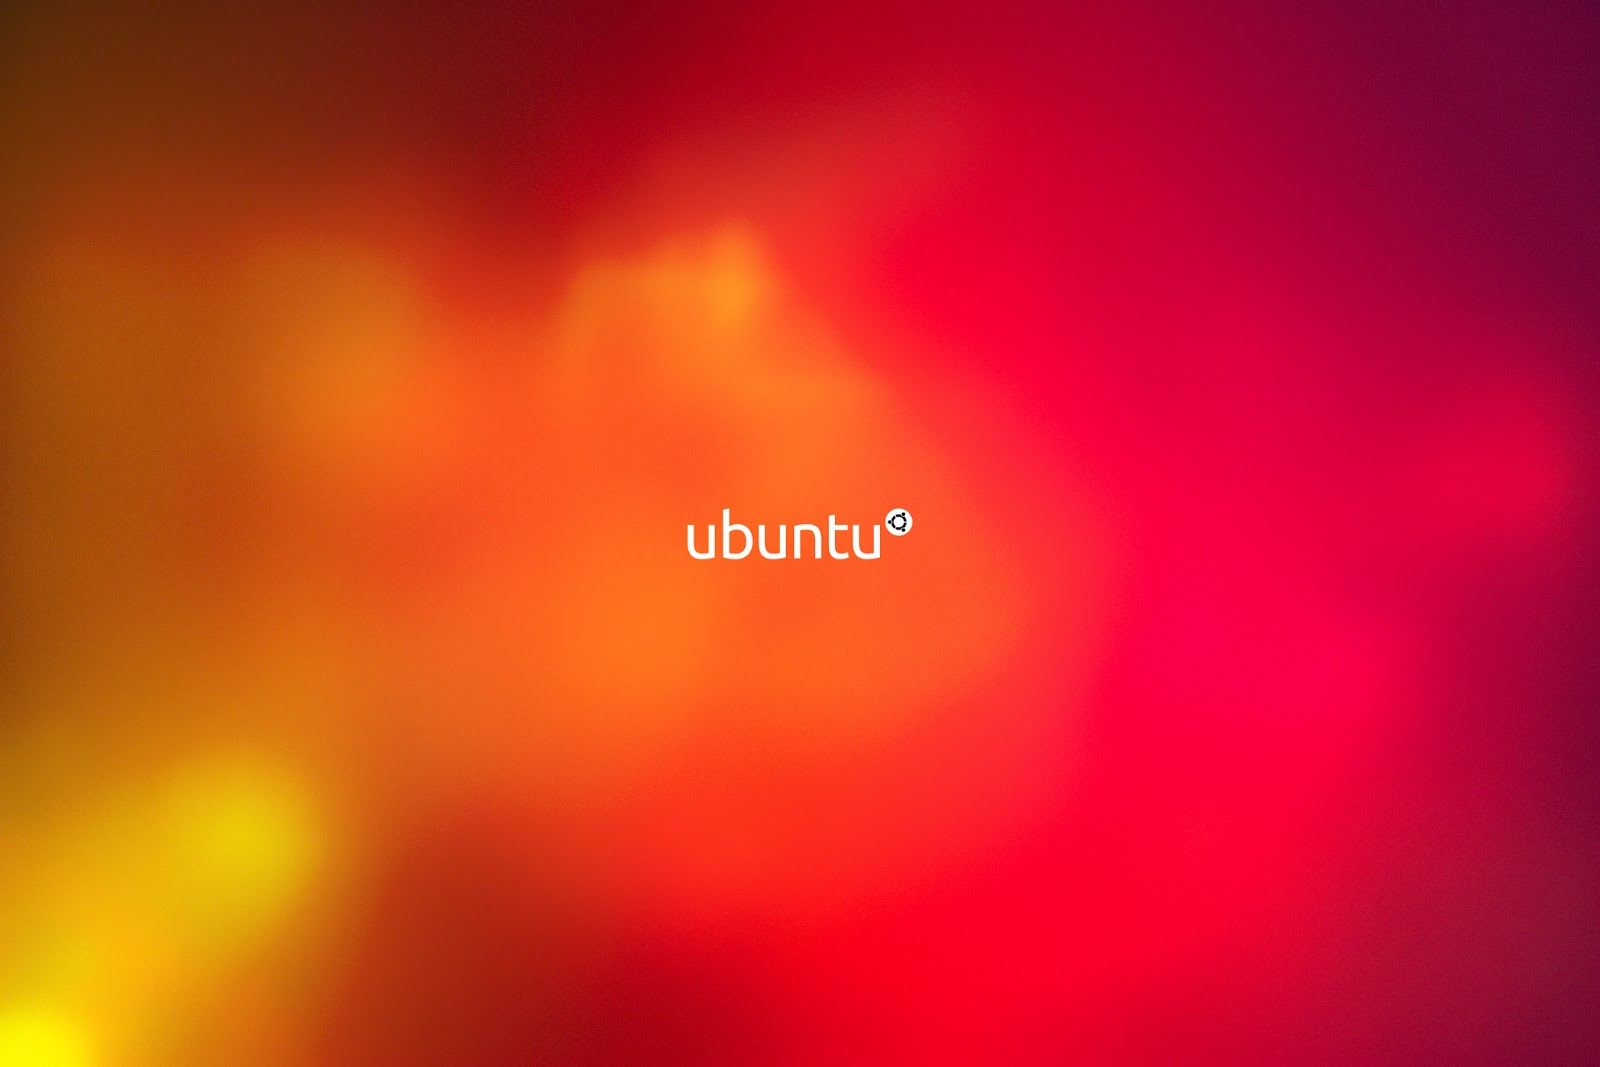 world of linux classic ubuntu hd wallpaper collection